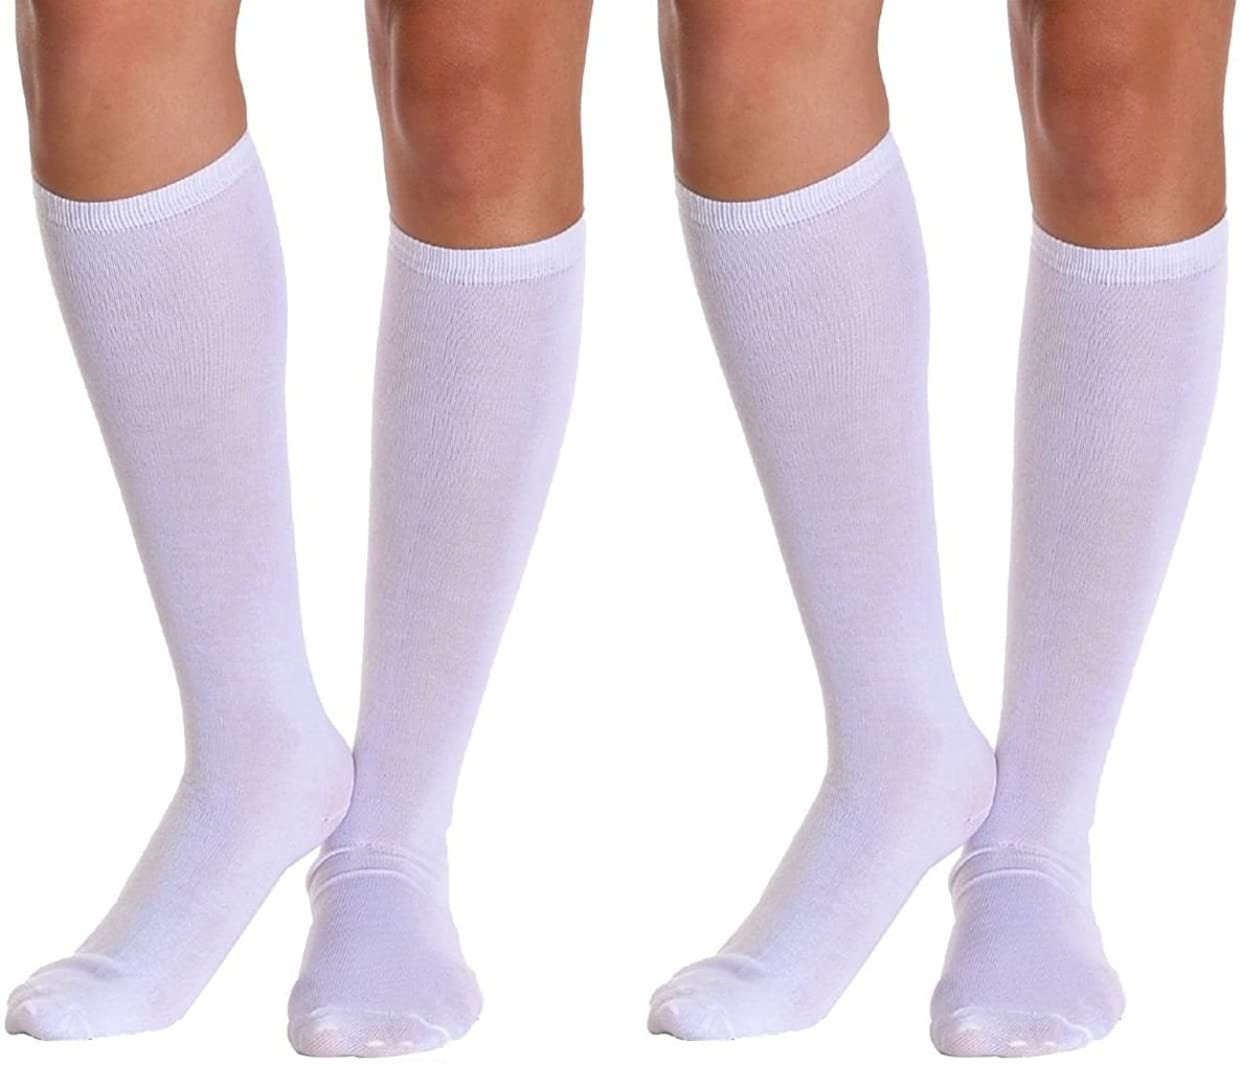 Sirosky Compression Socks Graduated Anti Fatigue Support Sock Feet Pain Relieving Ache Relief for Men Woman Over the Calf Below Knee High (White : 2 Pair, Large/X-Large)